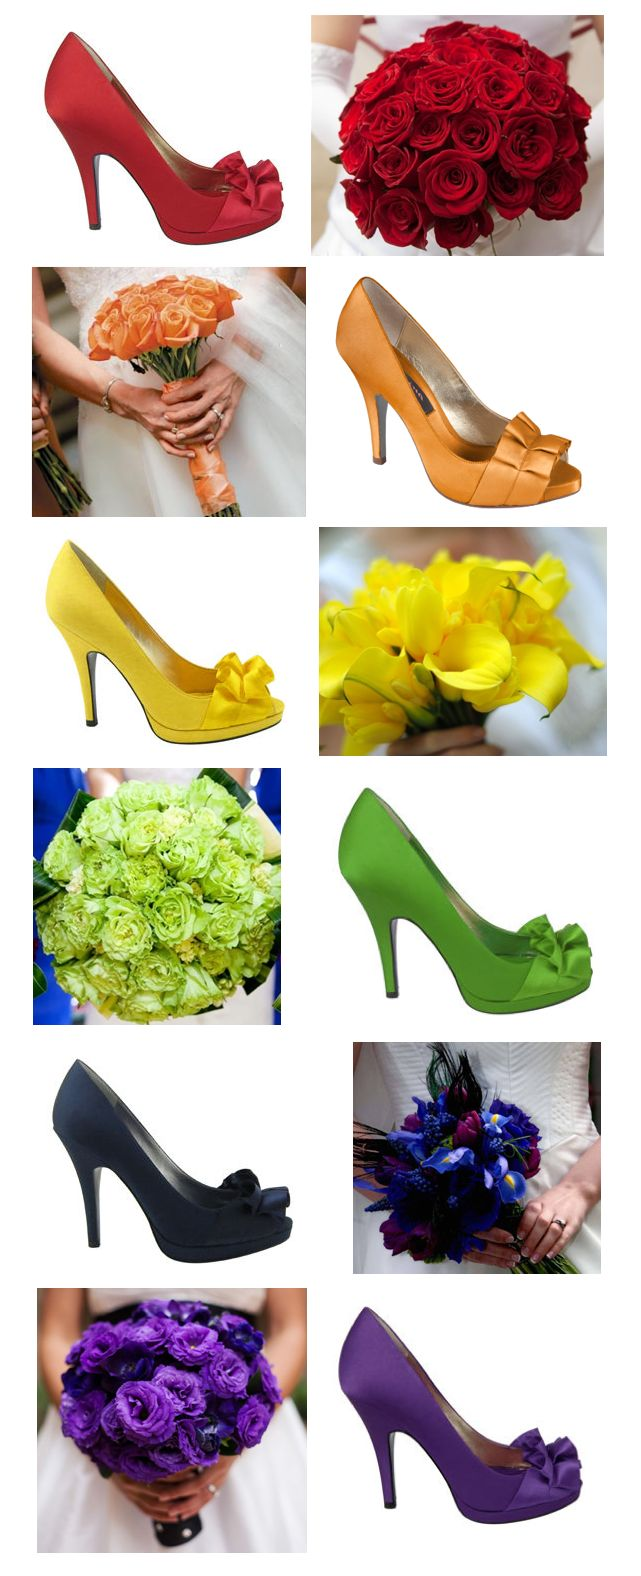 look at these fun shoes for brides maids, who says you have to stick to just plain!!!